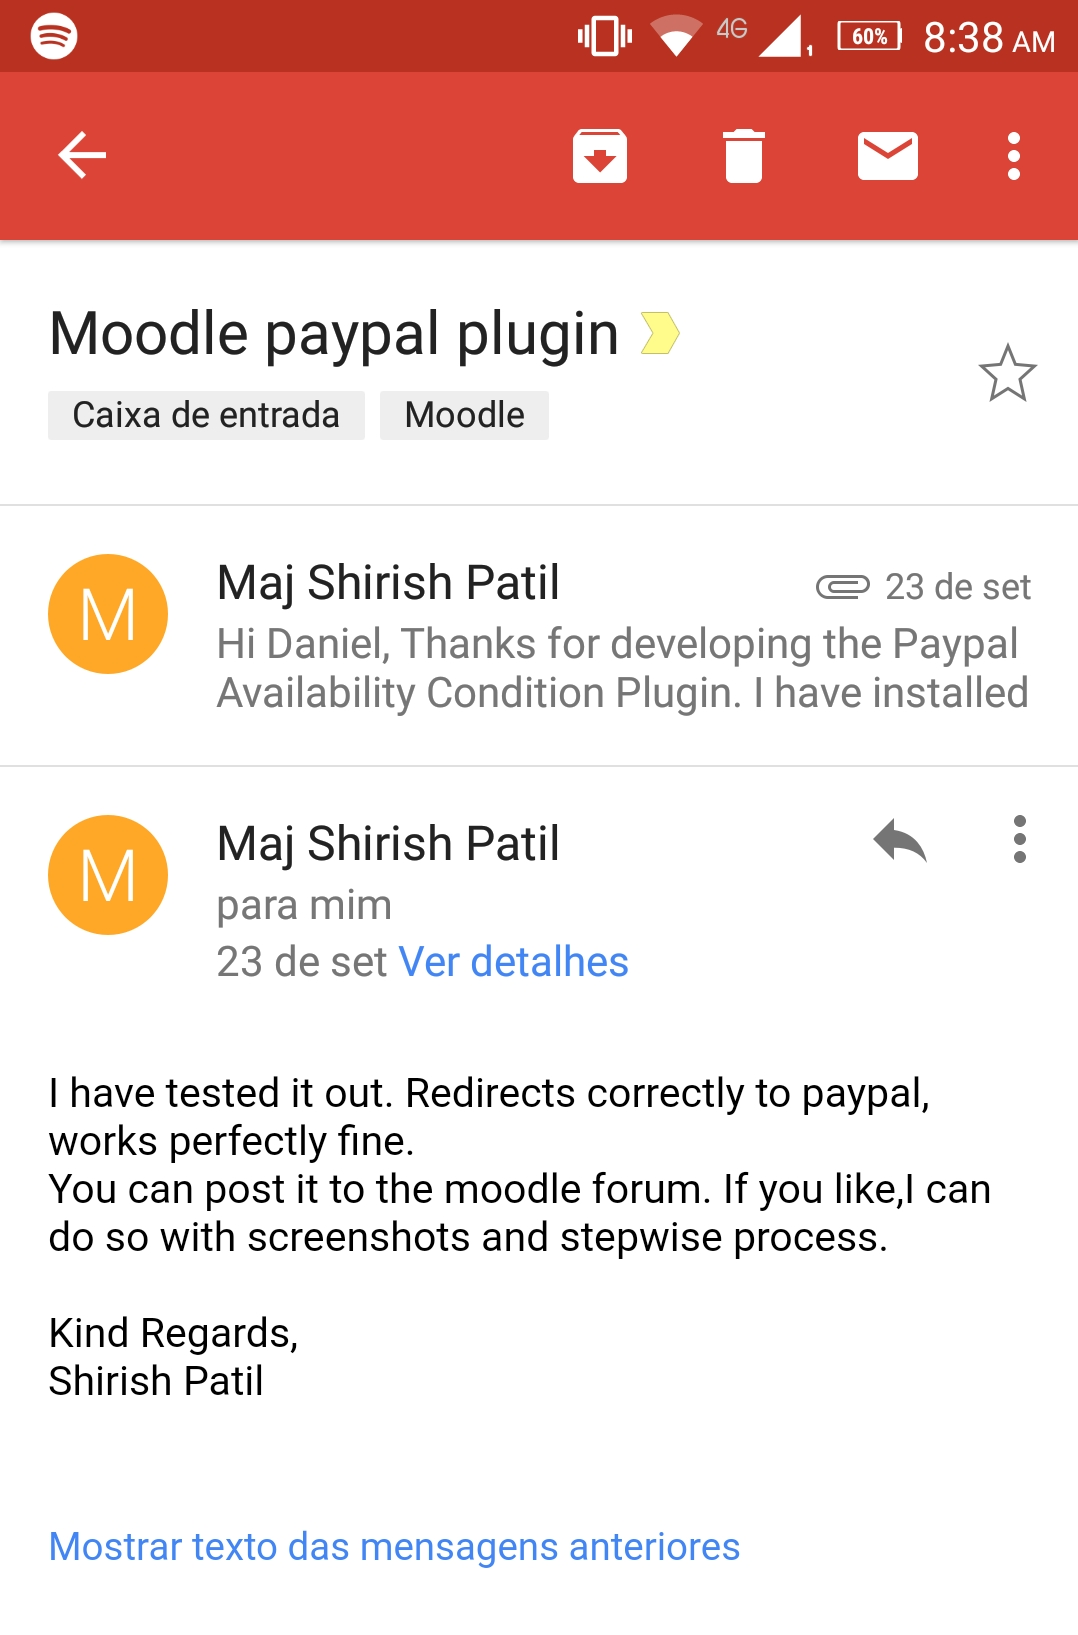 MDL-63603] Add Indian Rupee to PayPal enrolment currencies - Moodle